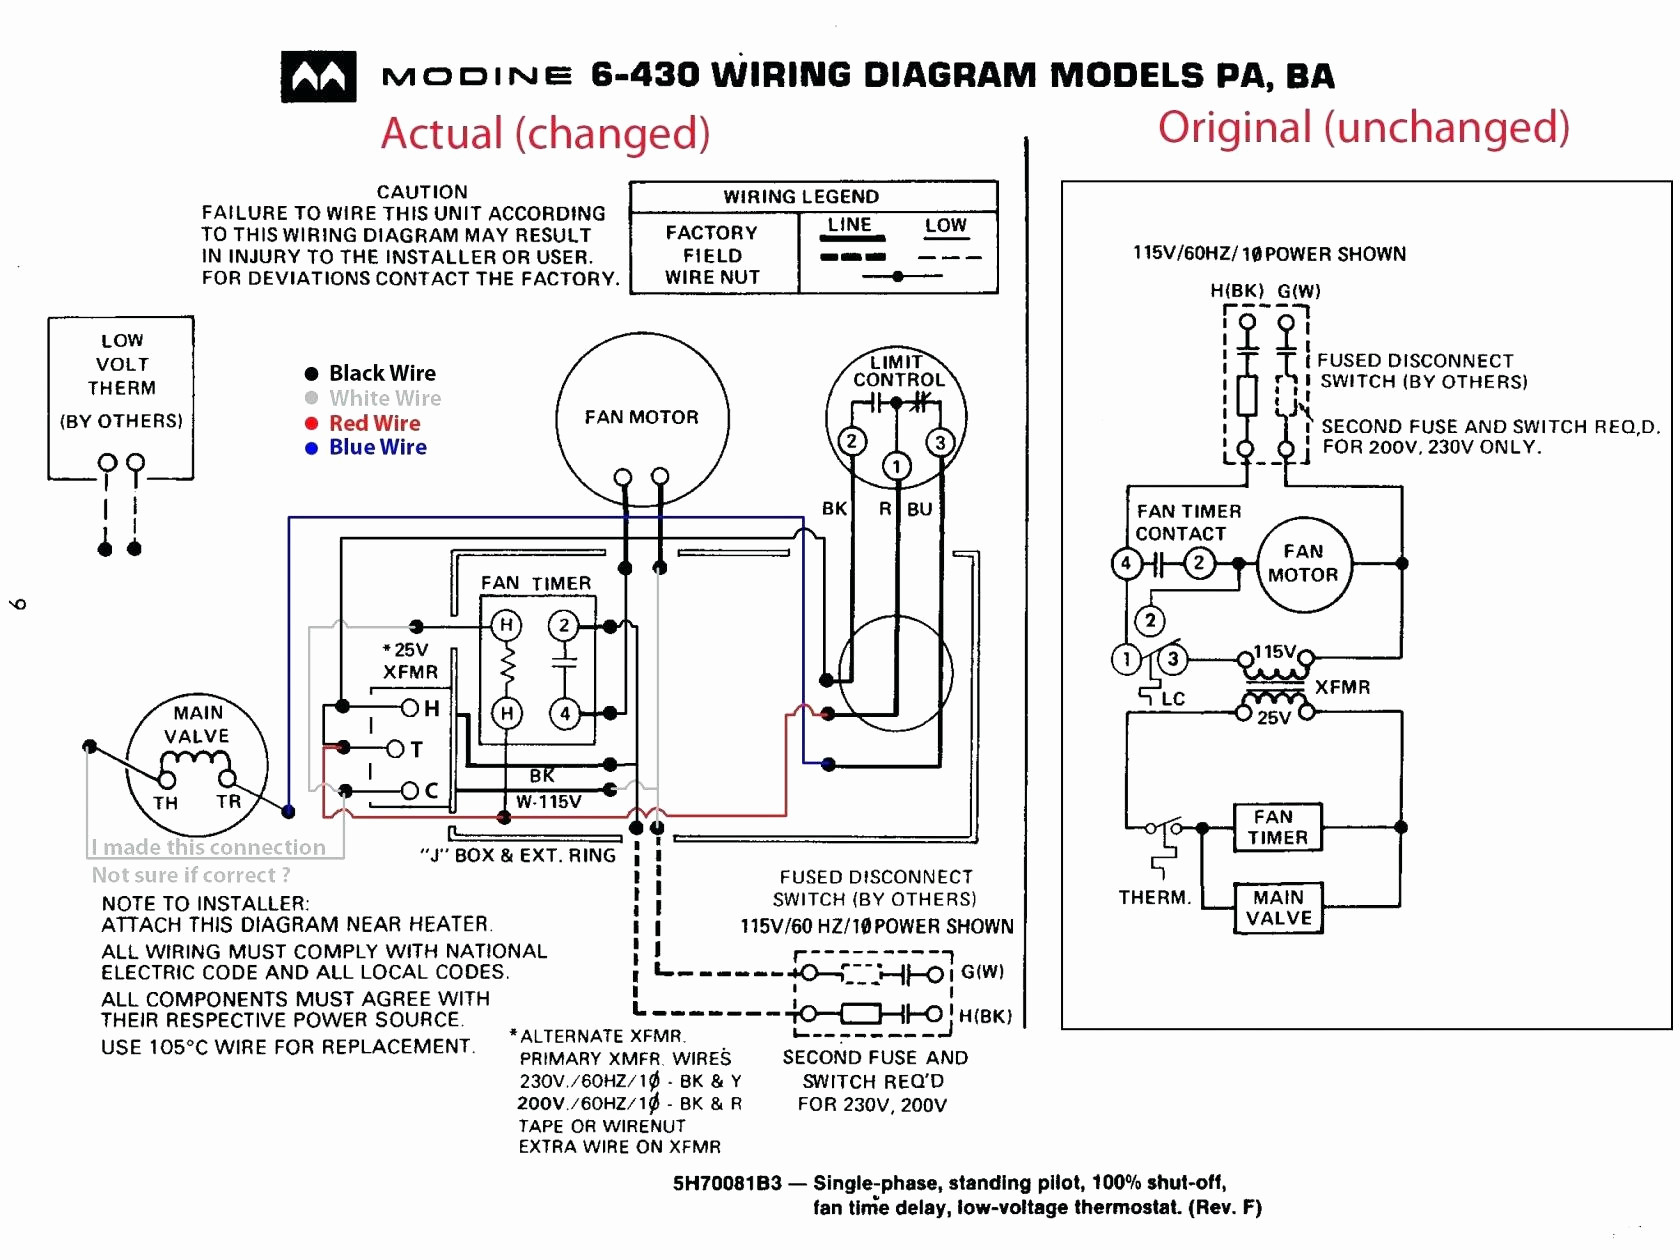 honeywell fan limit switch wiring diagram Collection-Ceiling Fan Installation Red Wire Luxury Honeywell Fan Limit Switch Wiring Diagram App A Light Control 11-e